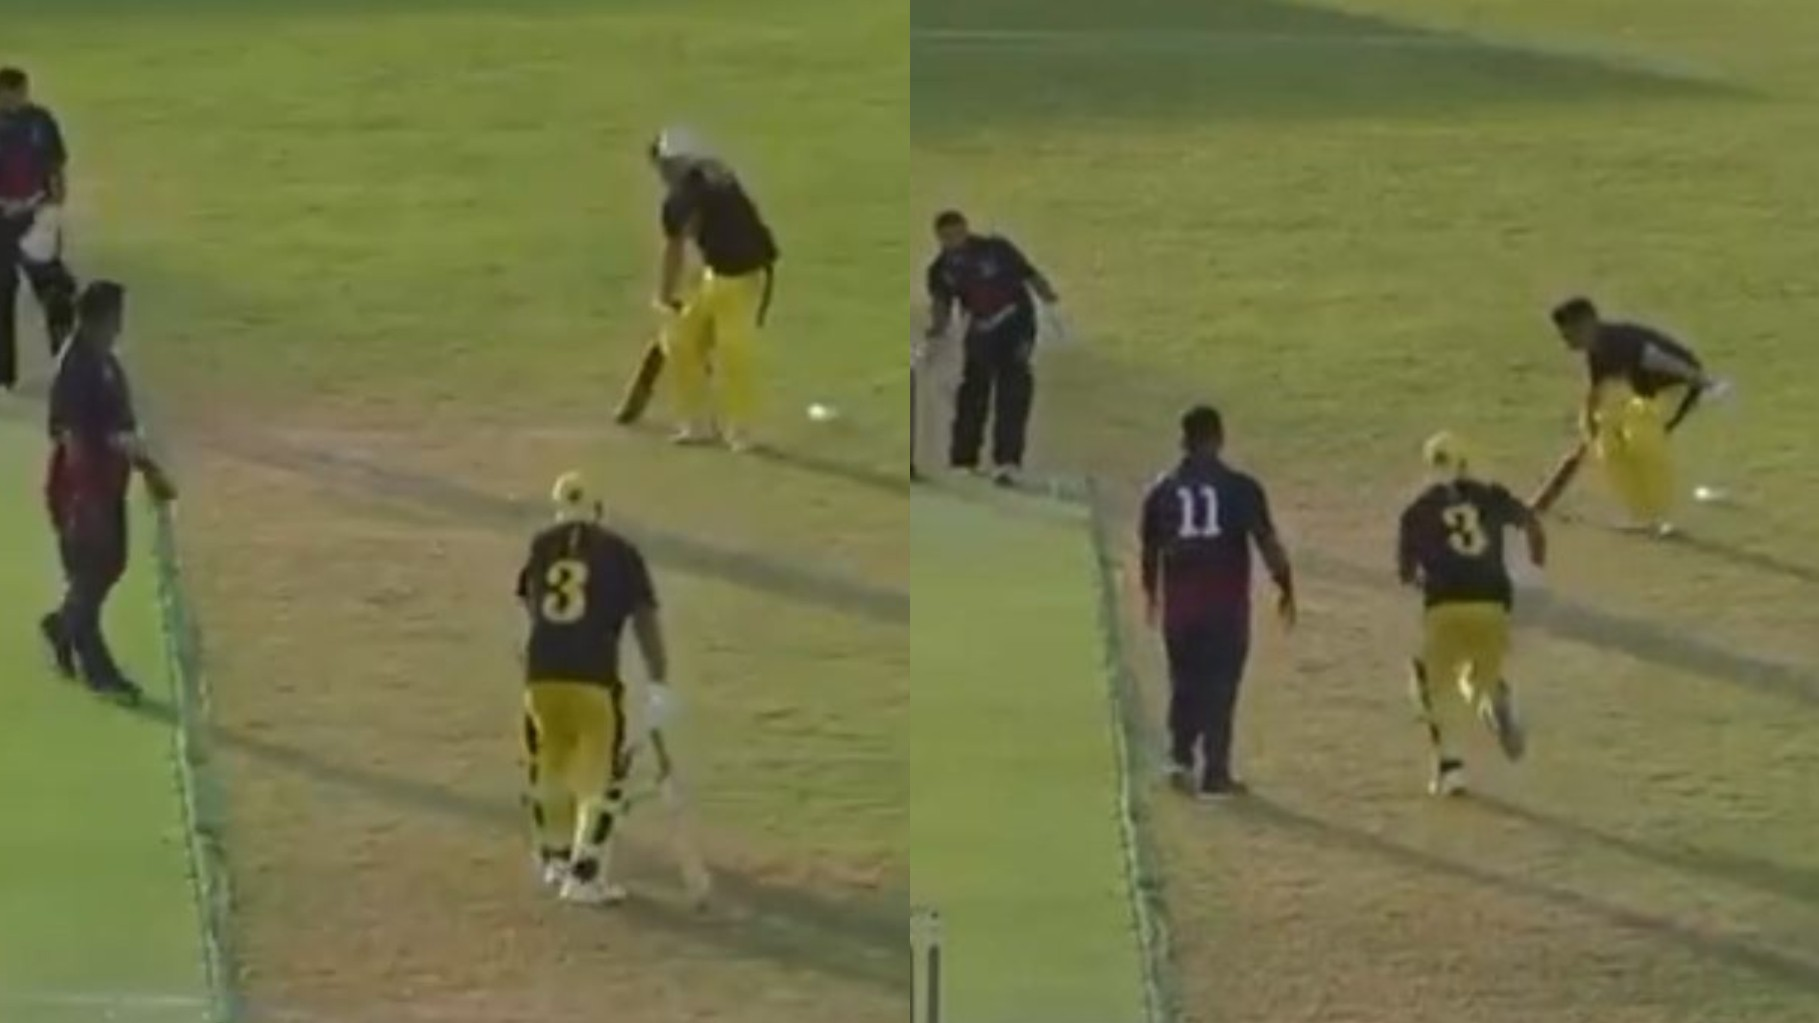 WATCH- Batsmen hilariously steal two runs despite wicketkeeper having the ball; game ends in tie